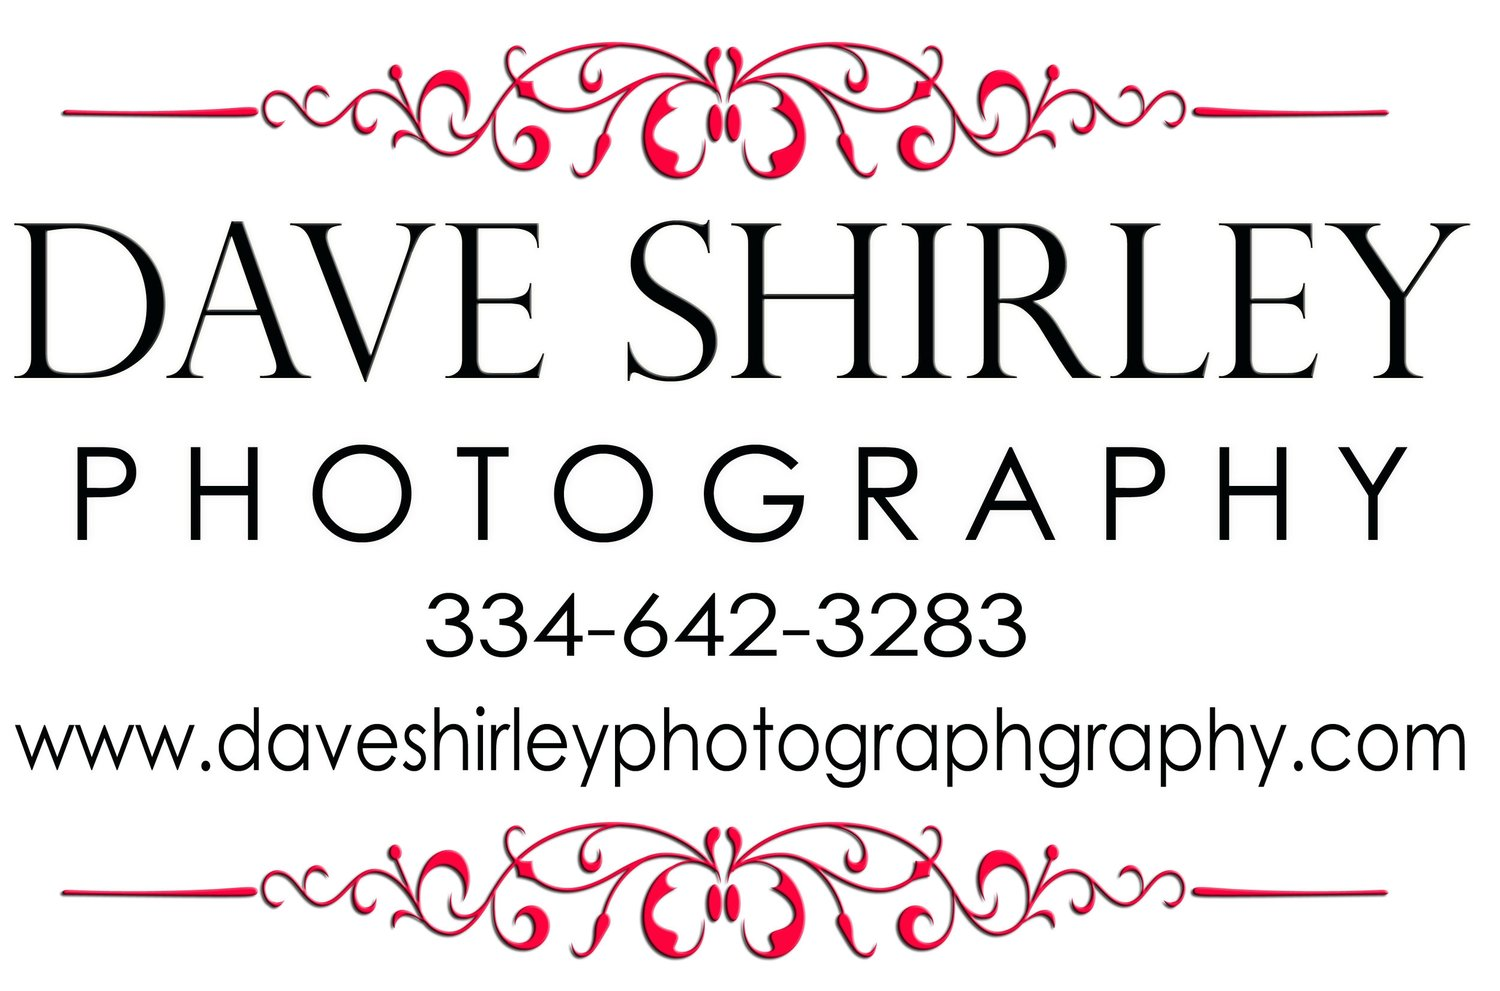 Dave Shirley Photography